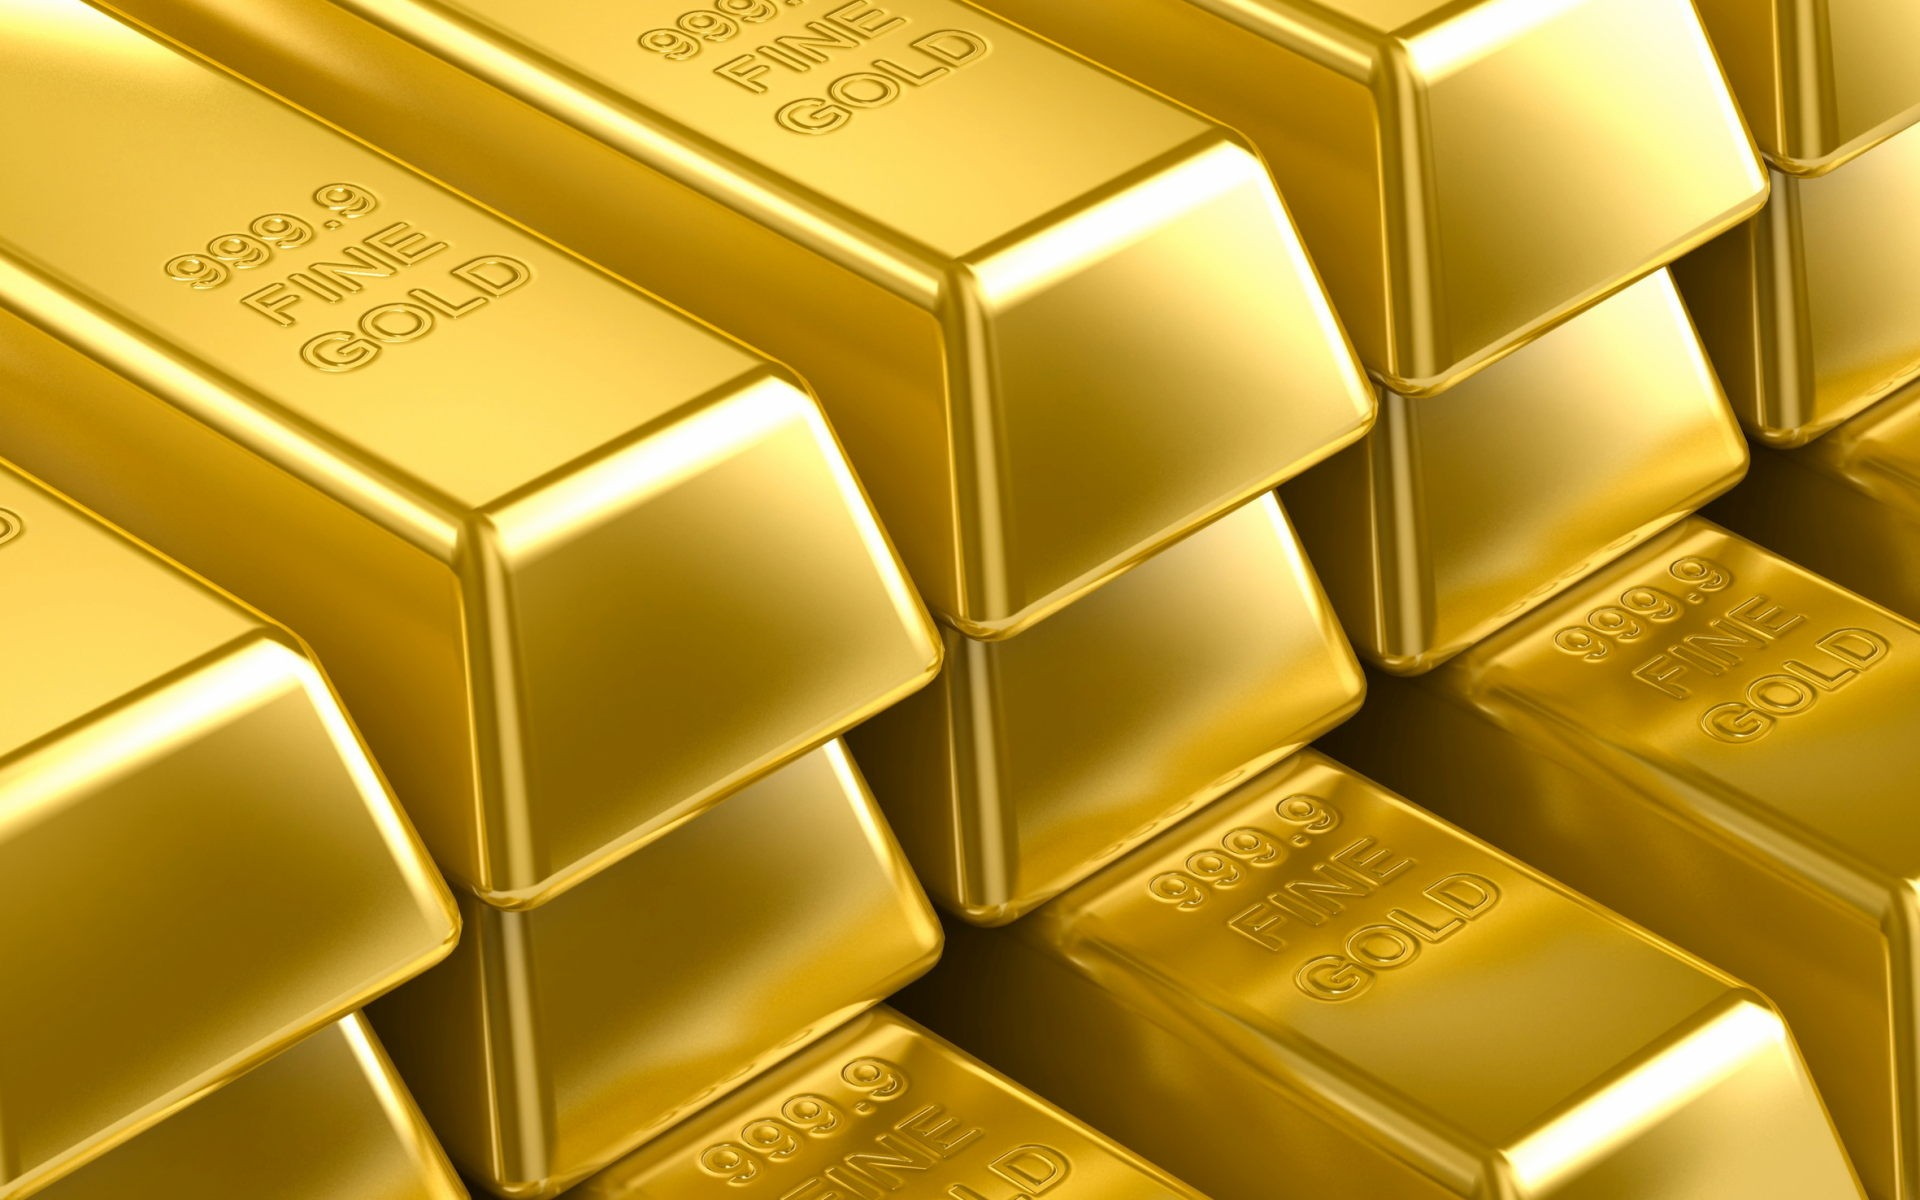 26599-gold-wallpaper-1920x1200-picture